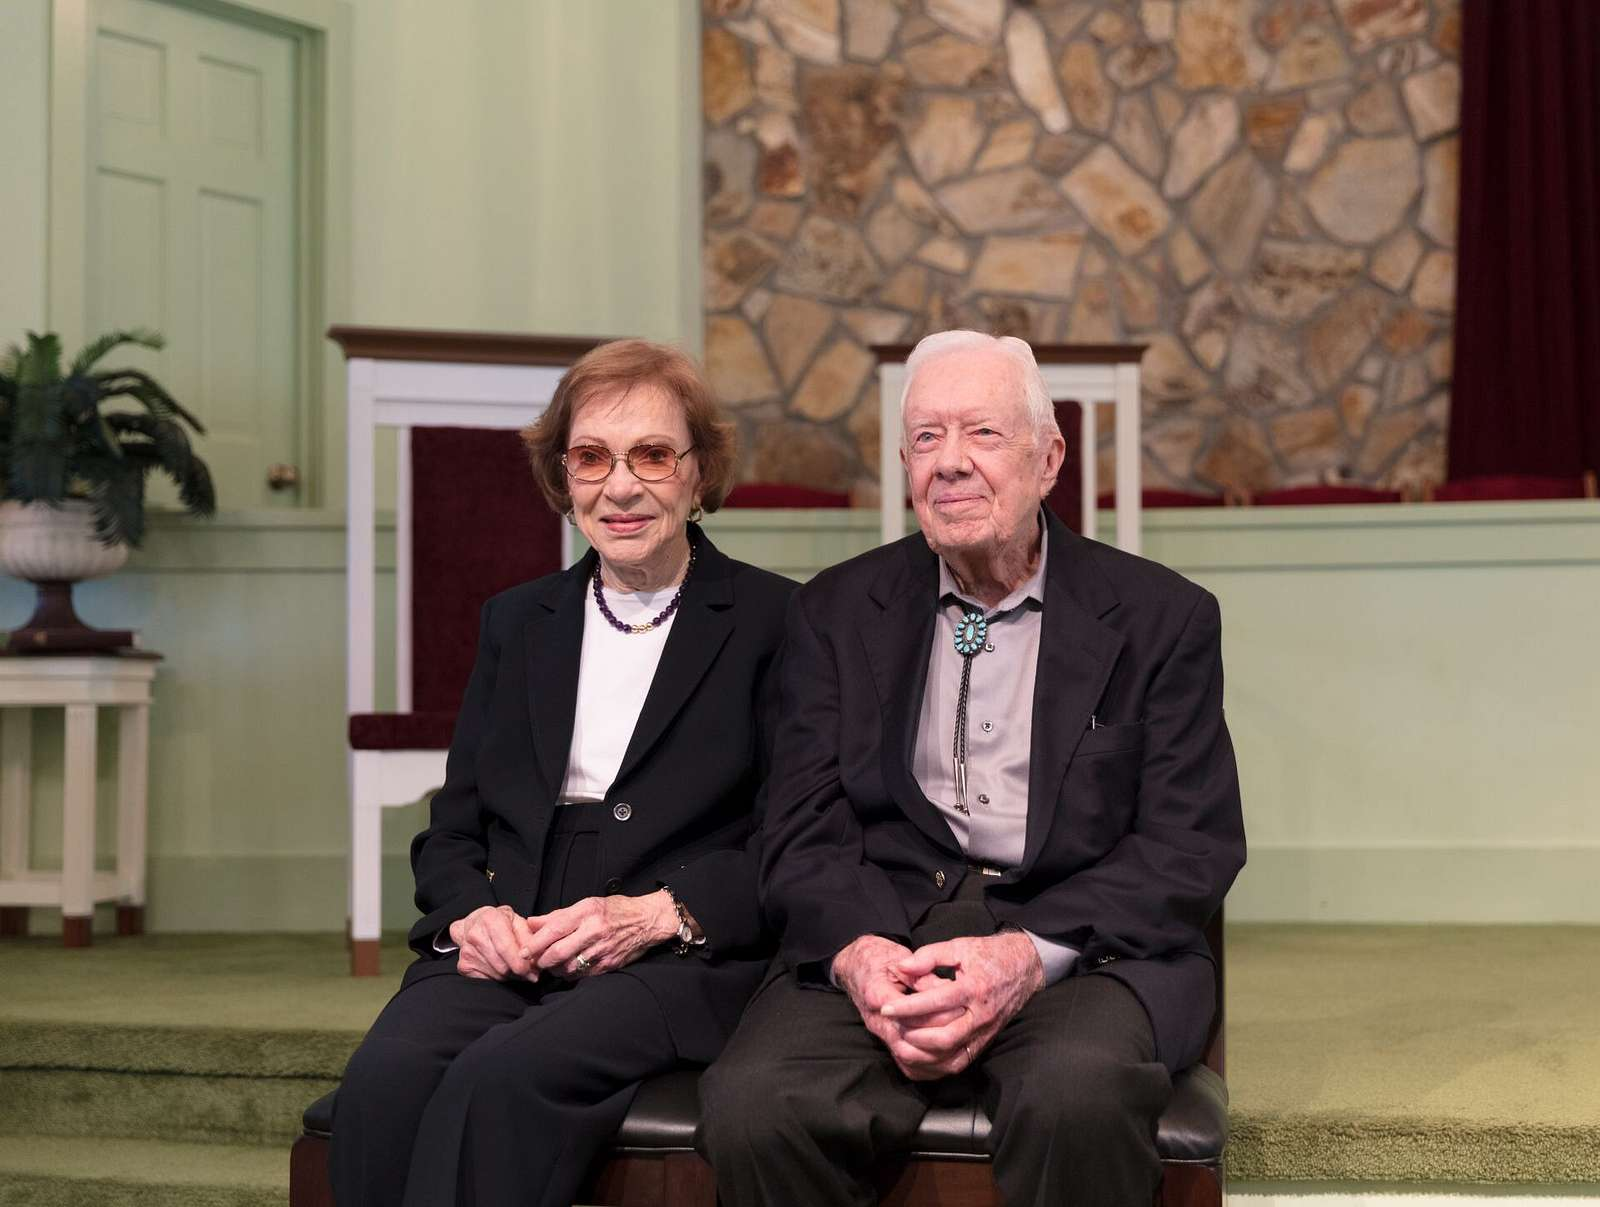 Several times each year former U.S. president Jimmy Carter discusses the meaning of biblical passages during his Sunday School lessons at the Maranantha Baptist Church in Carter's hometown of Plains, Georgia, and following each lesson, he and his wife, former First Lady Rosalynn Carter, also a Plains native, wait to greet each and every parishioner who wishes to be photographed with the former first couple